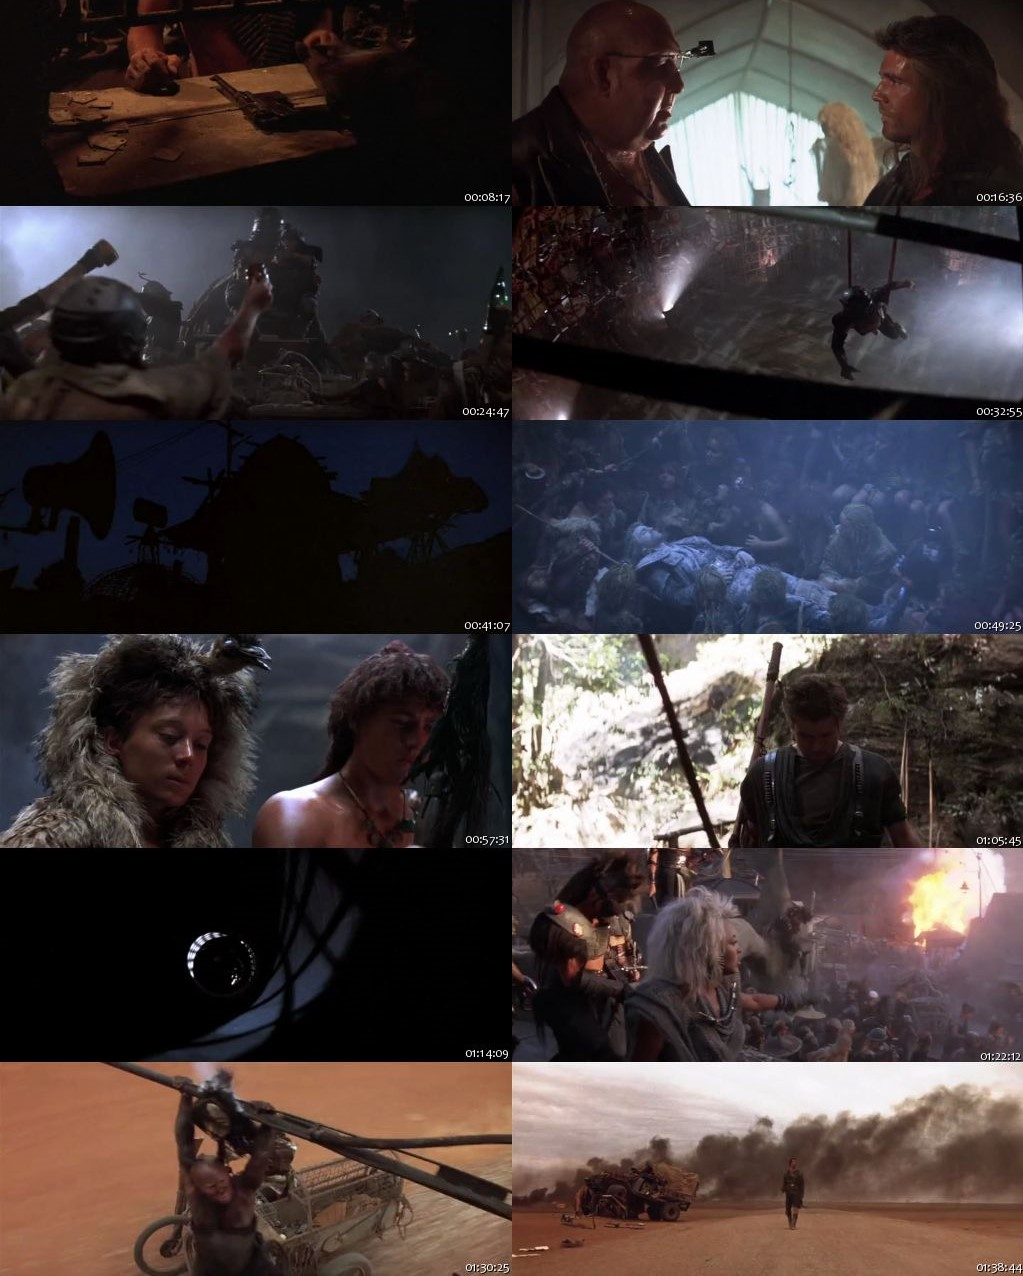 Mad Max Beyond Thunderdome 1985 BRRip 480p 300Mb [Hindi-English]